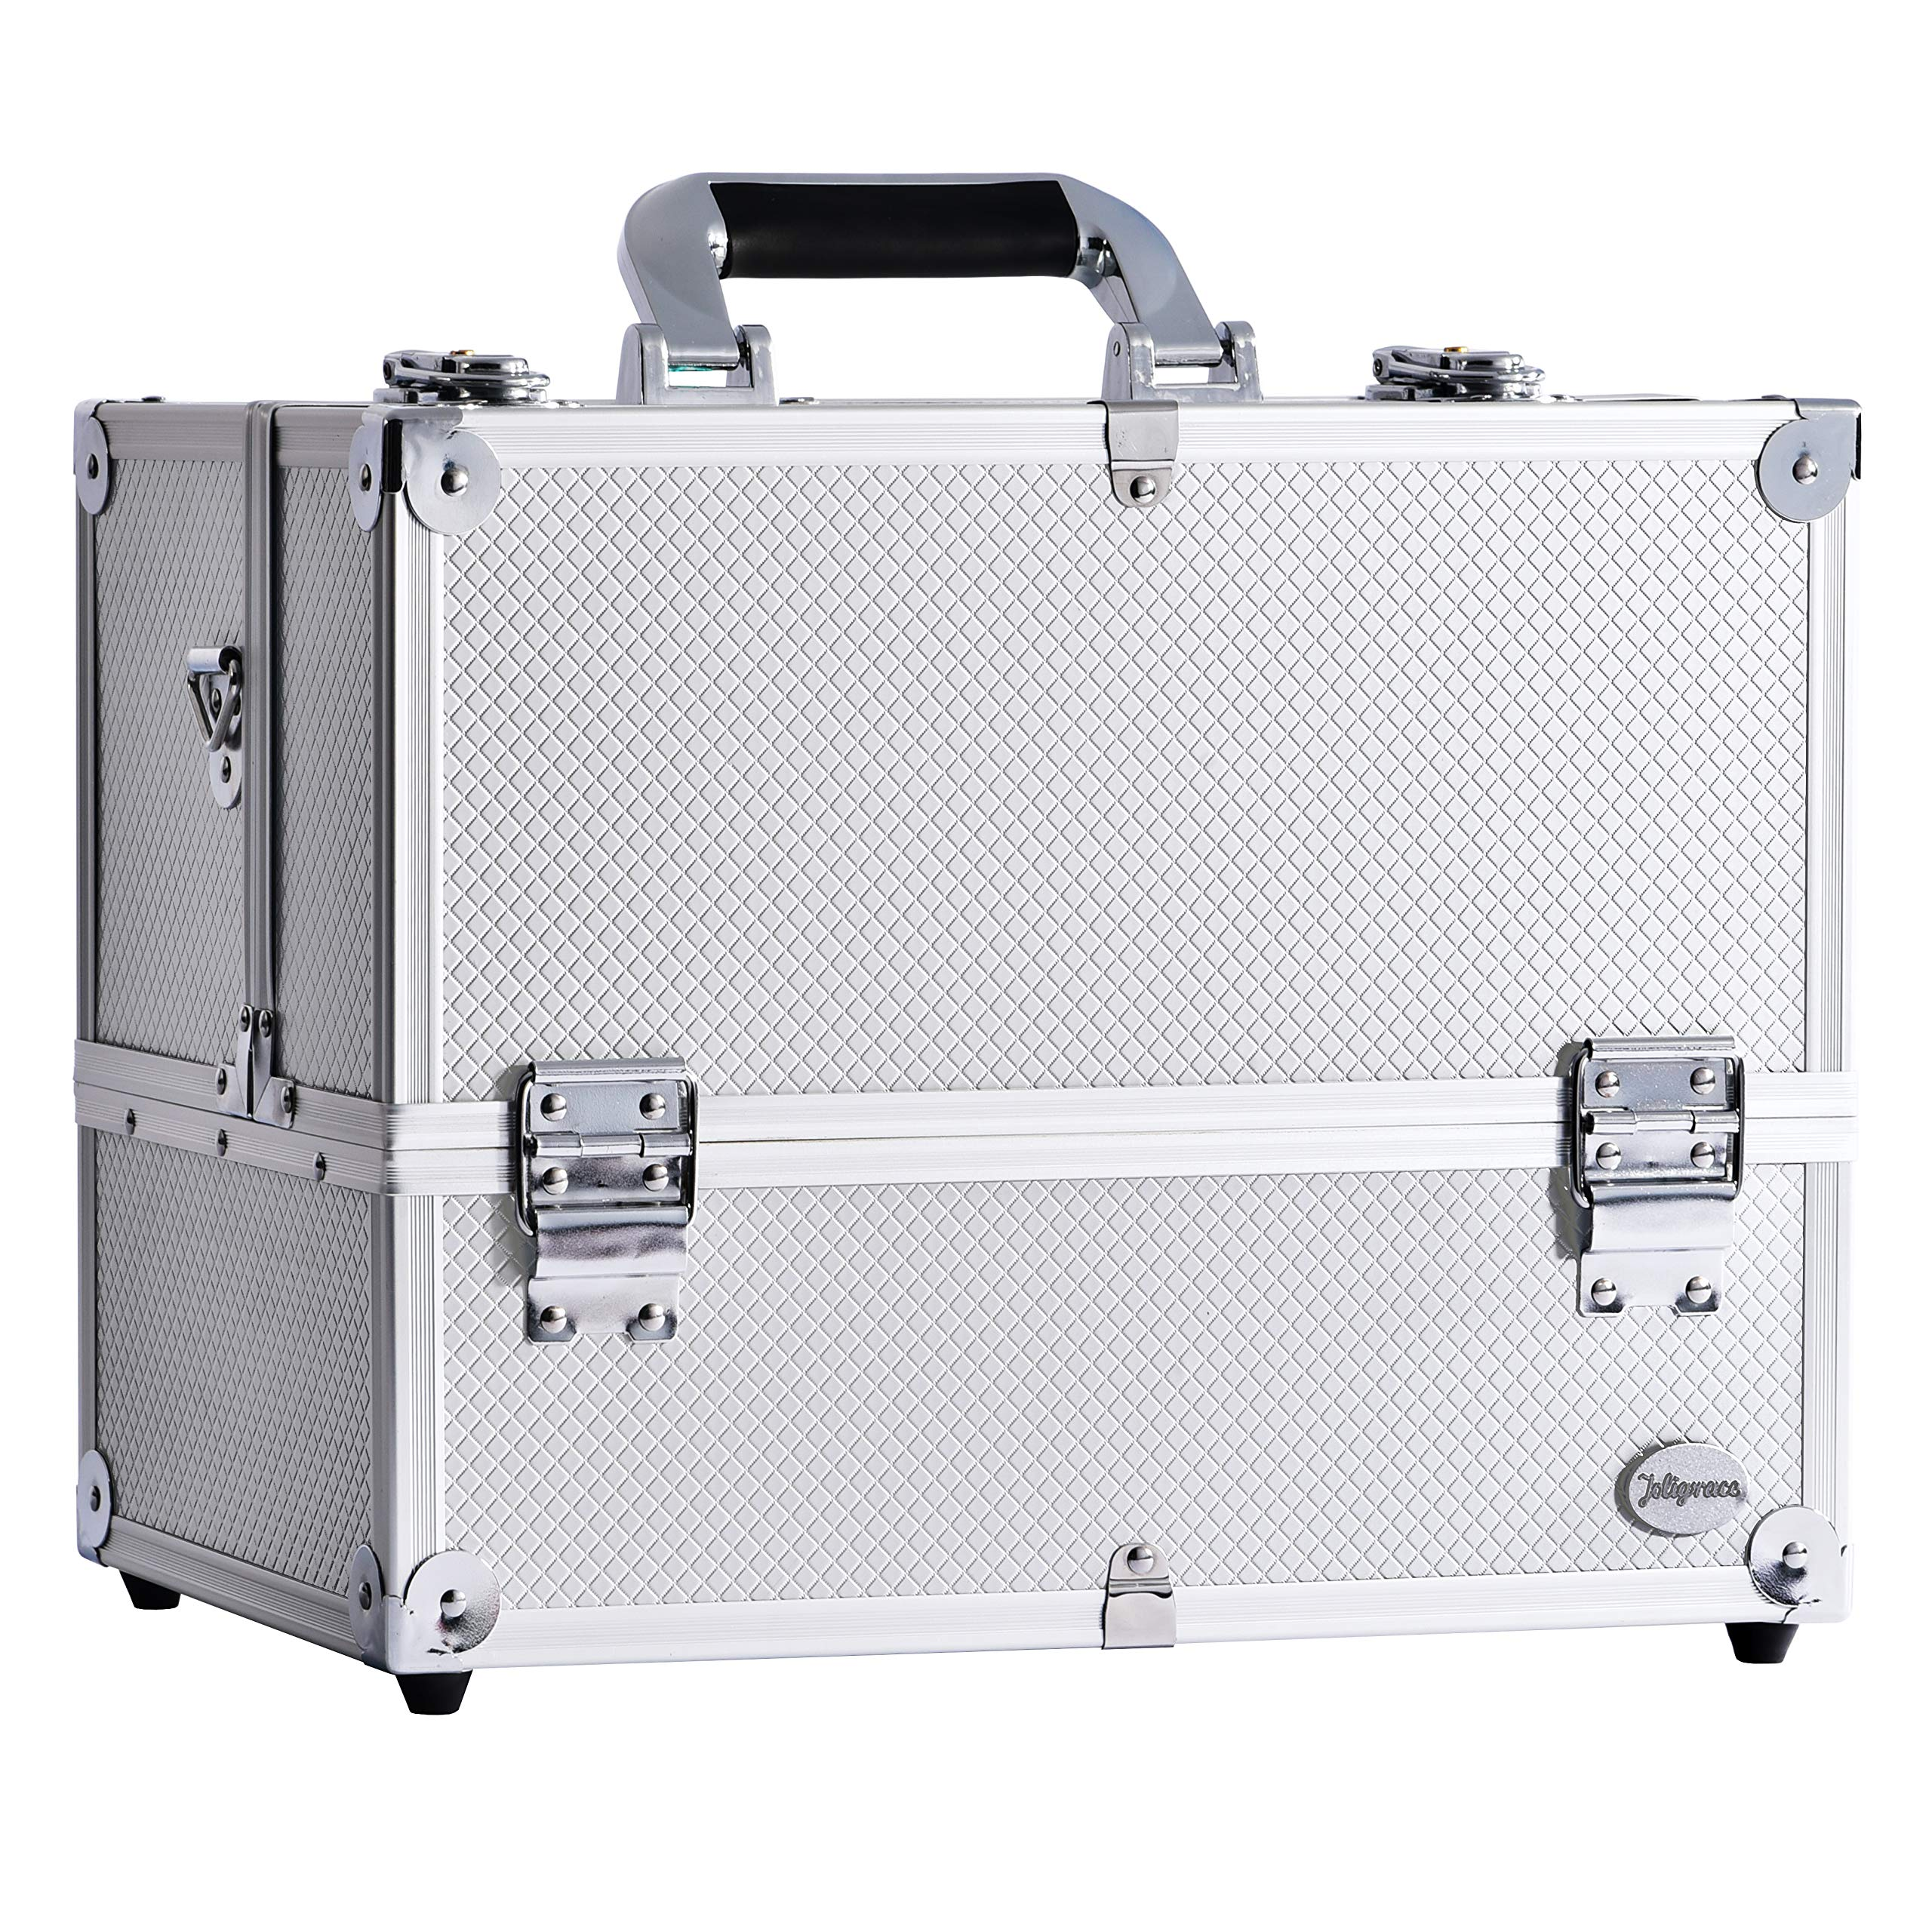 14'' Makeup Train Case Large 6 Tray Professional Organizer Box - Cosmetic Make Up Carrier with Lock & Key Carrying Strap and Adjustable Dividers for Studio Artist & Stylist Silver by Joligrace